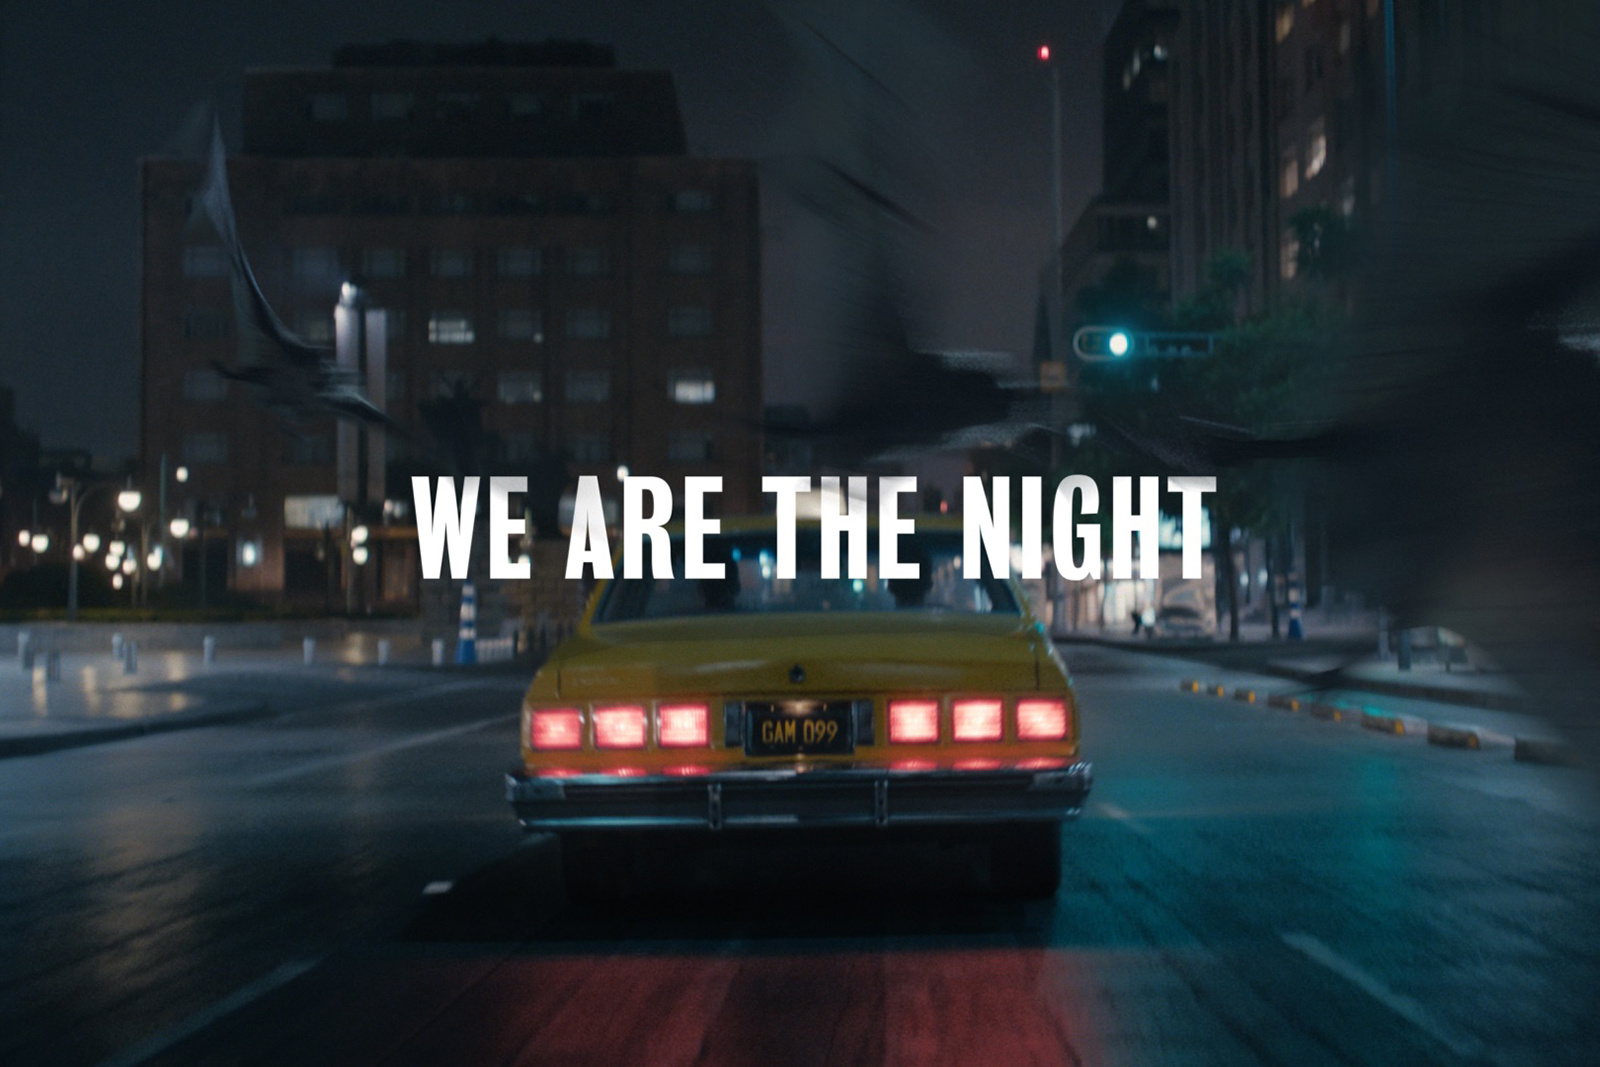 High Resolution Wallpaper   We Are The Night 1600x1067 px